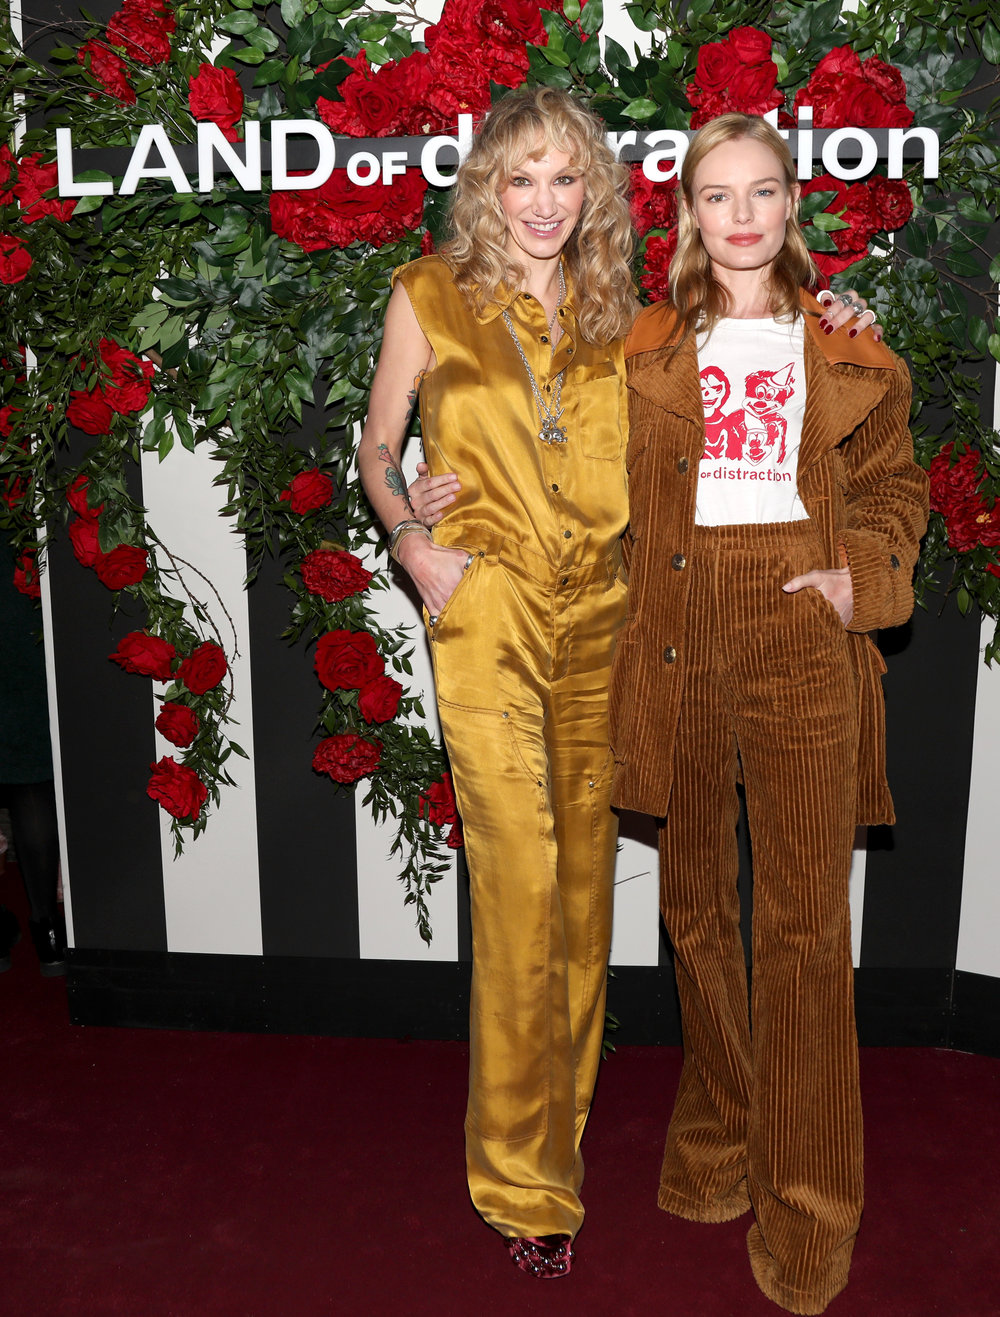 CEO Danita Short alongside actress Kate Bosworth, both wearing Land of Distraction.